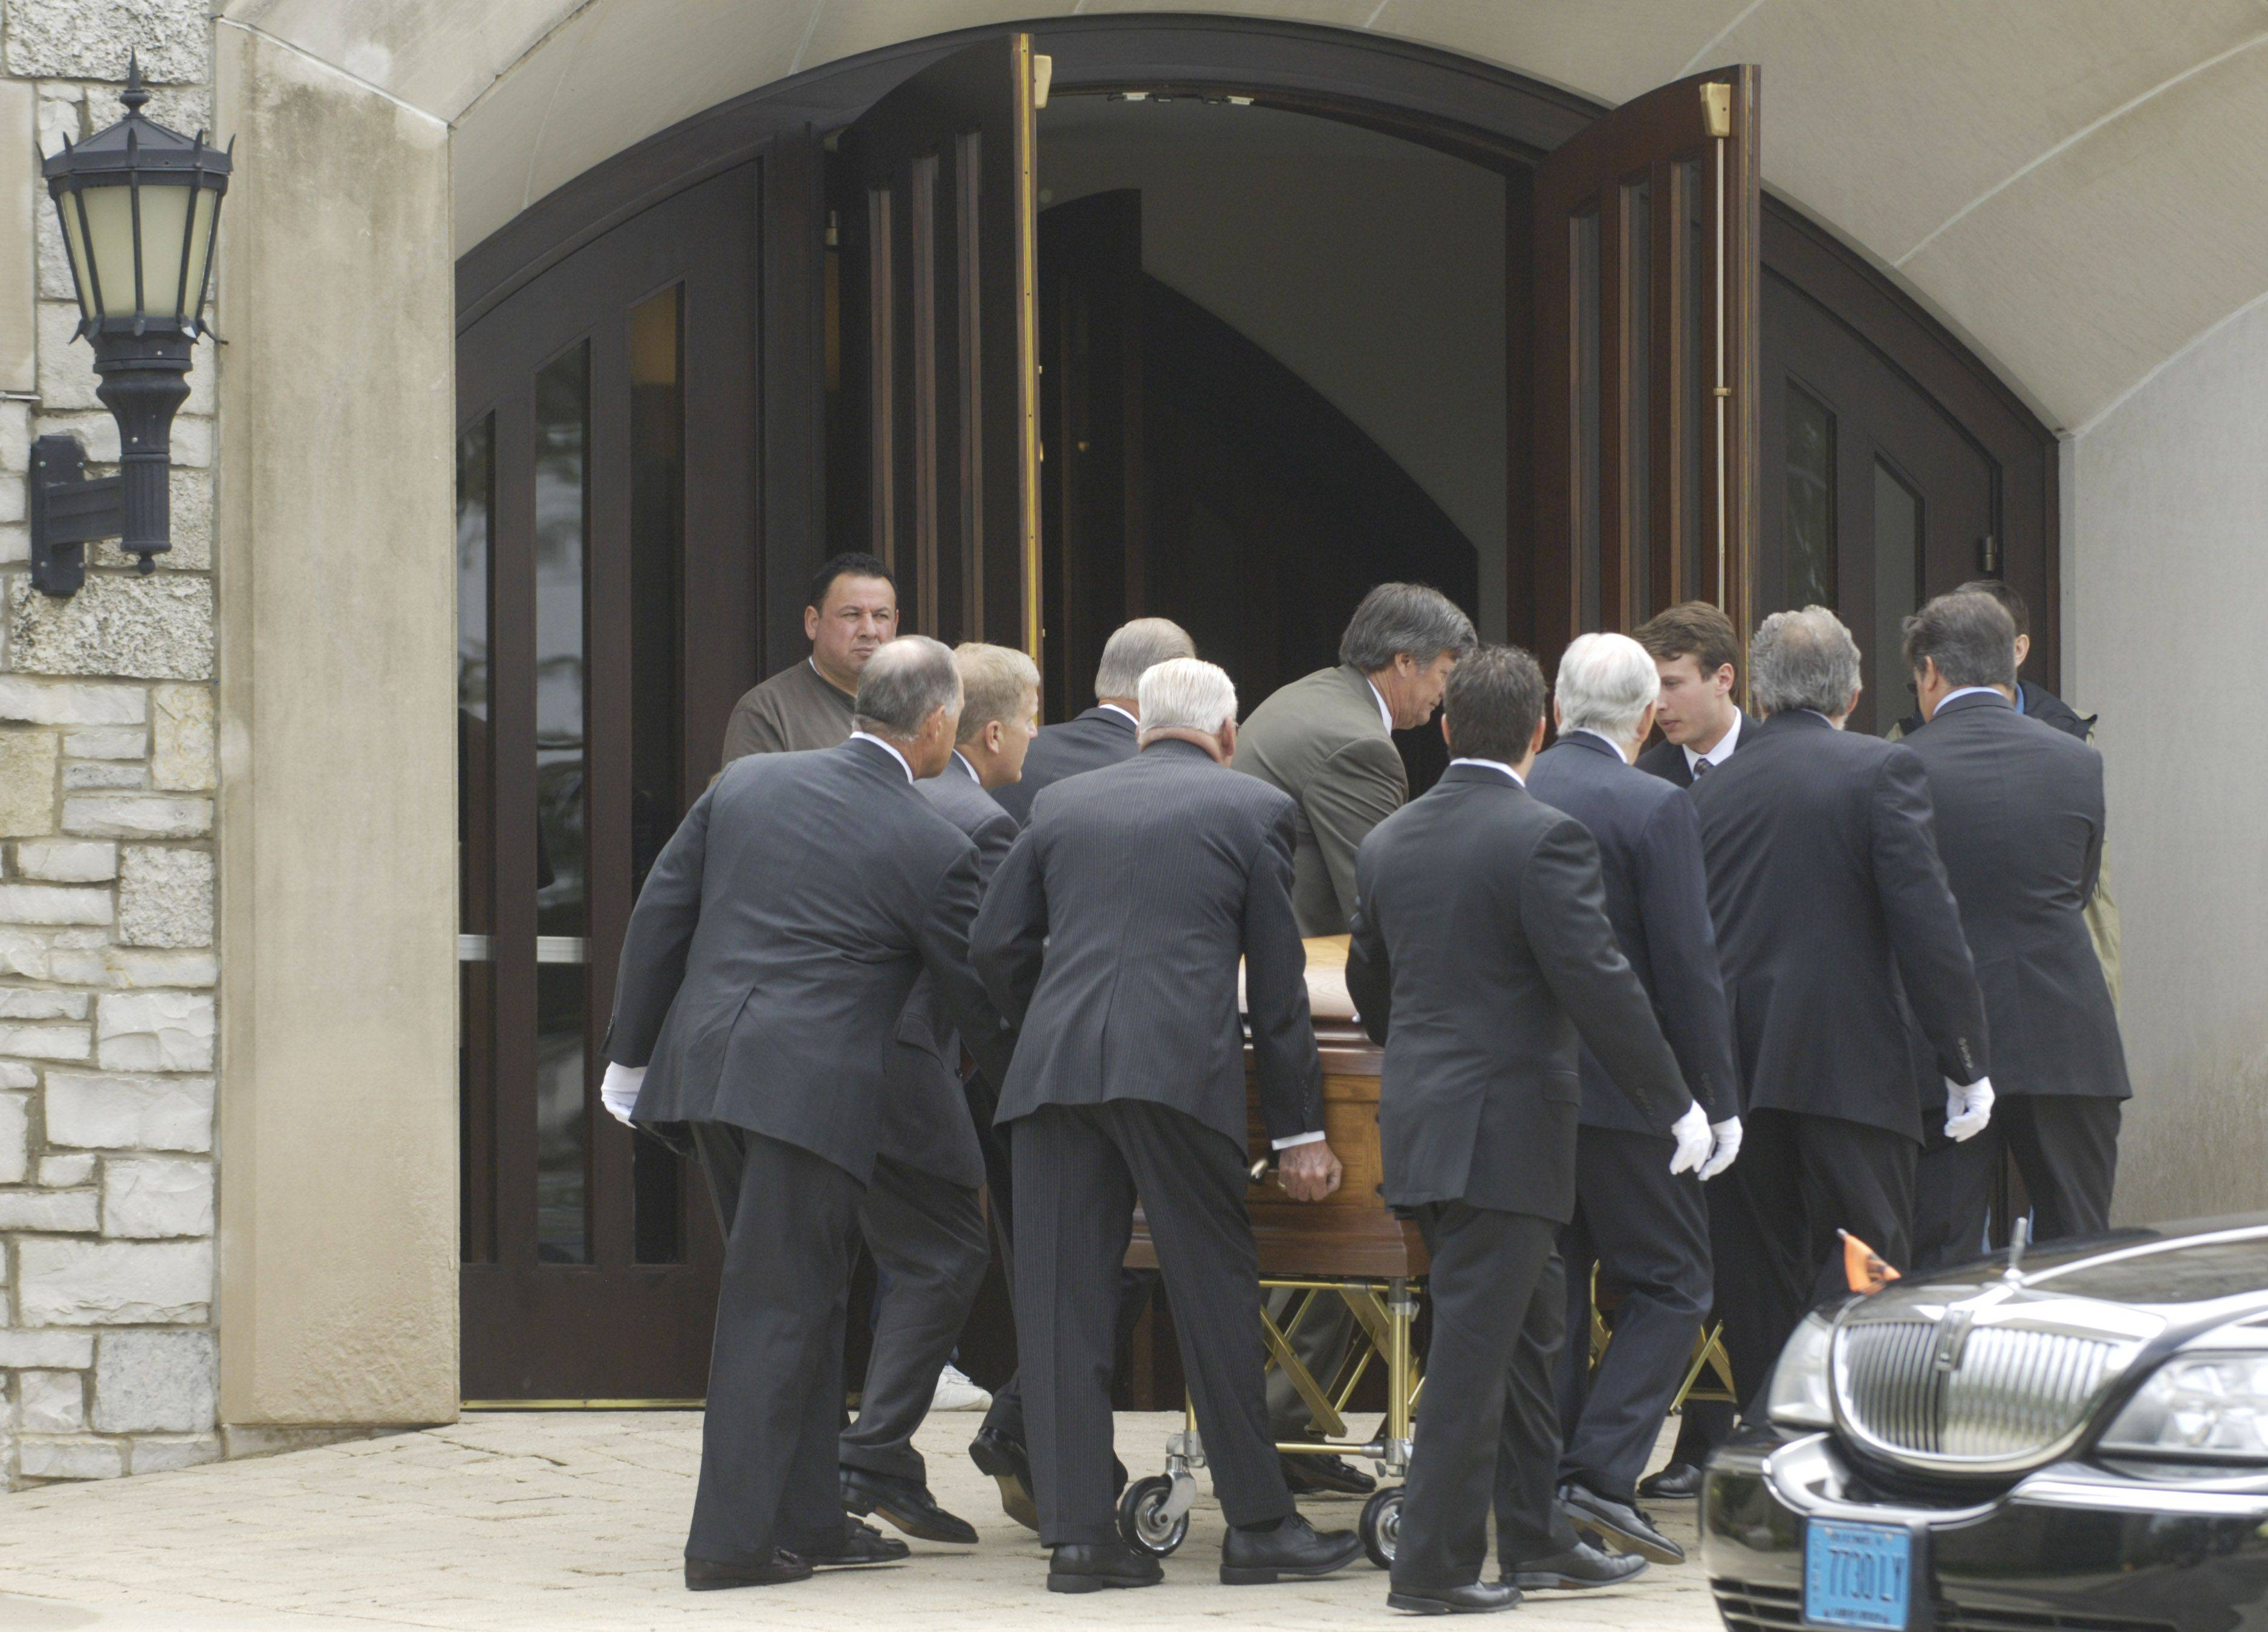 Pallbearers carry the casket from the hearse into St. Anne Catholic Church in Barrington Friday.